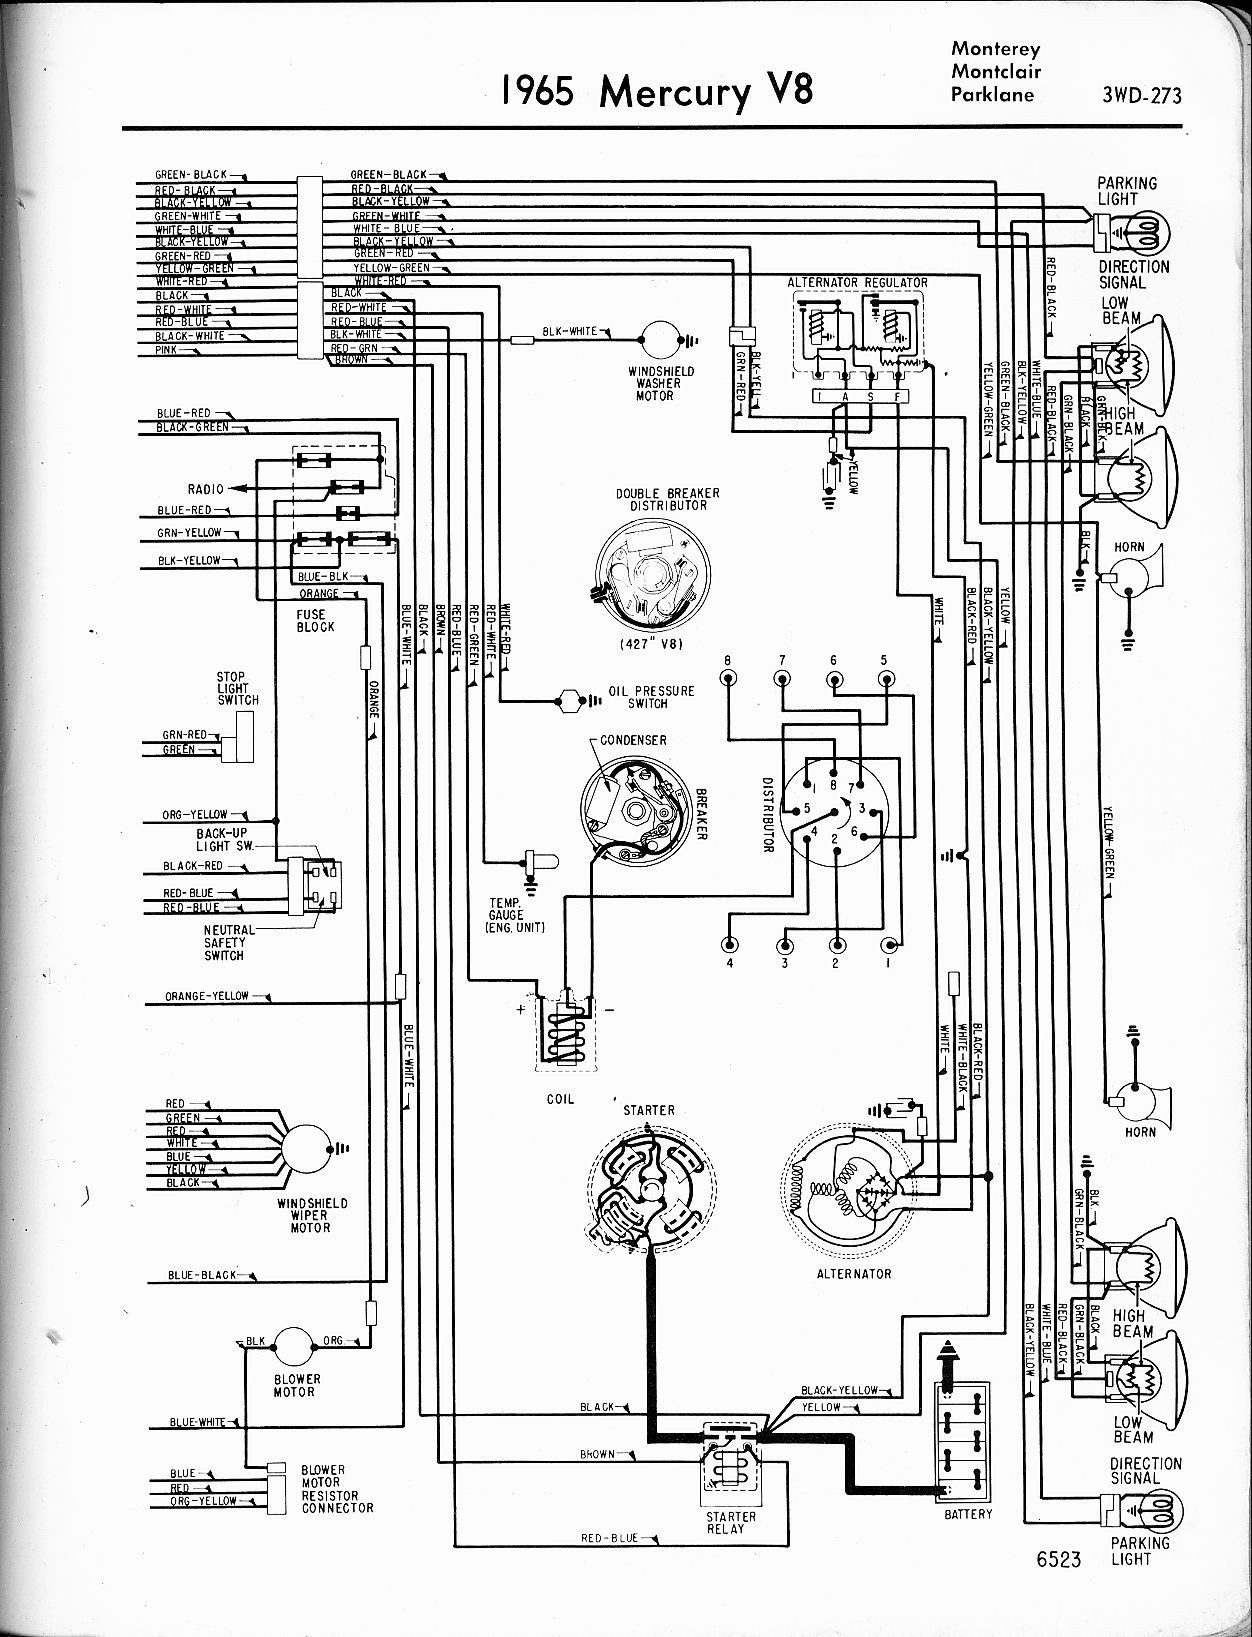 2000 mercury cougar wiring diagram free download learn wiring rh thegadgetgurus co 1967 mercury cougar alternator wiring diagram